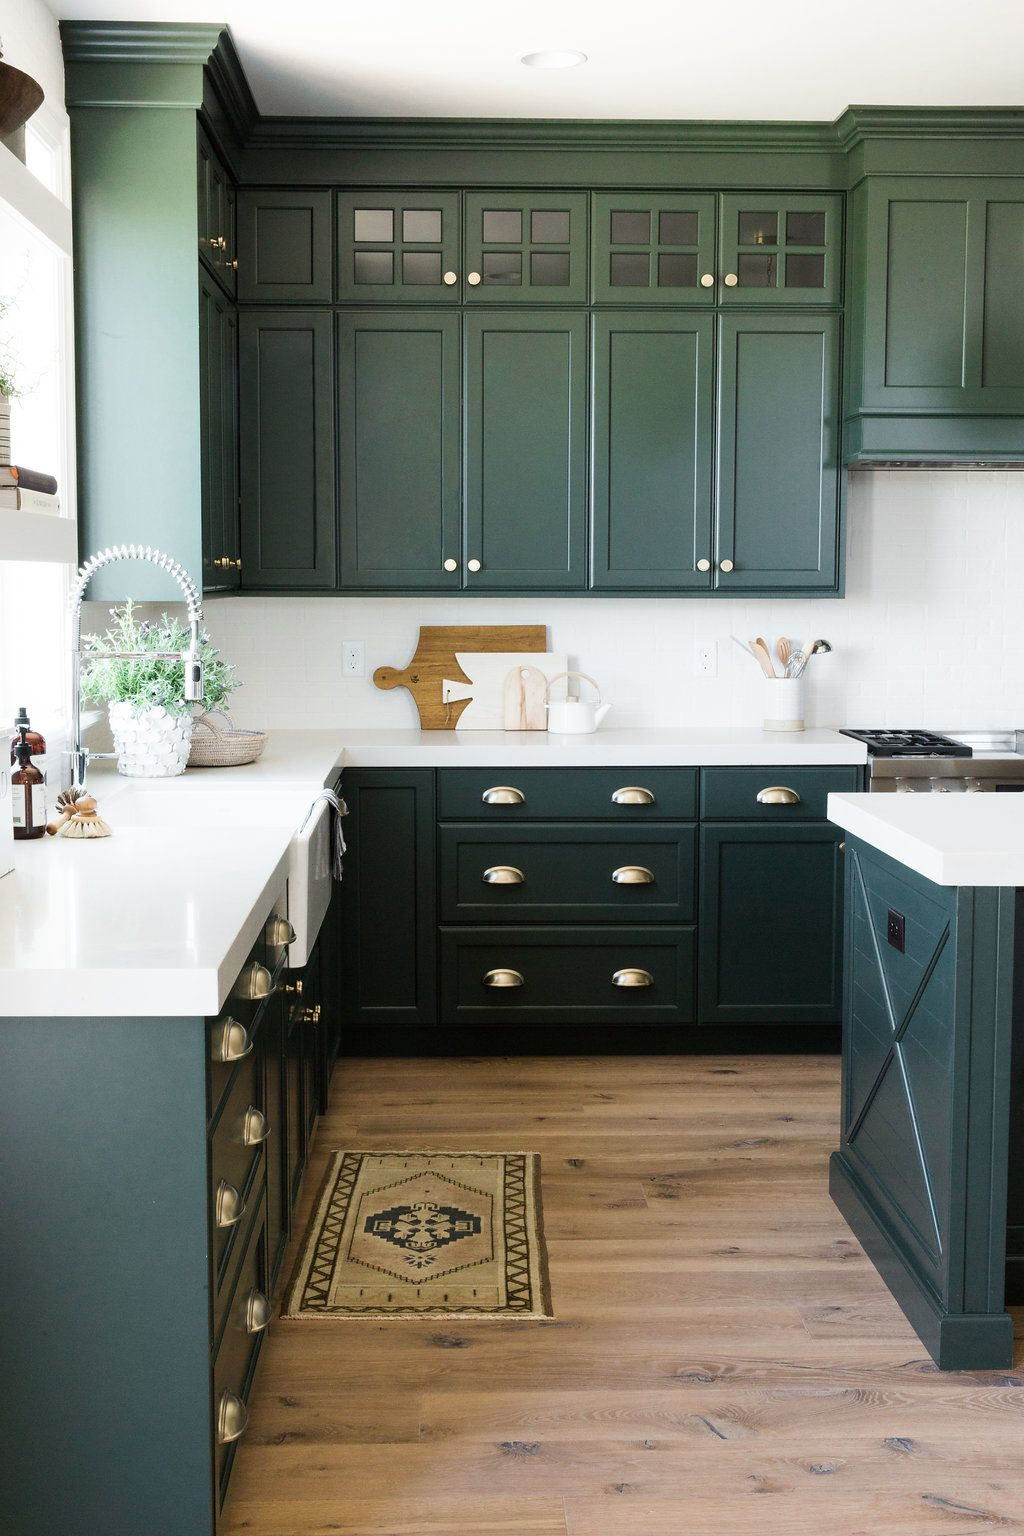 Why We Love Muted Vintage Rugs Kitchen Cabinet Design Green Kitchen Cabinets Dark Green Kitchen